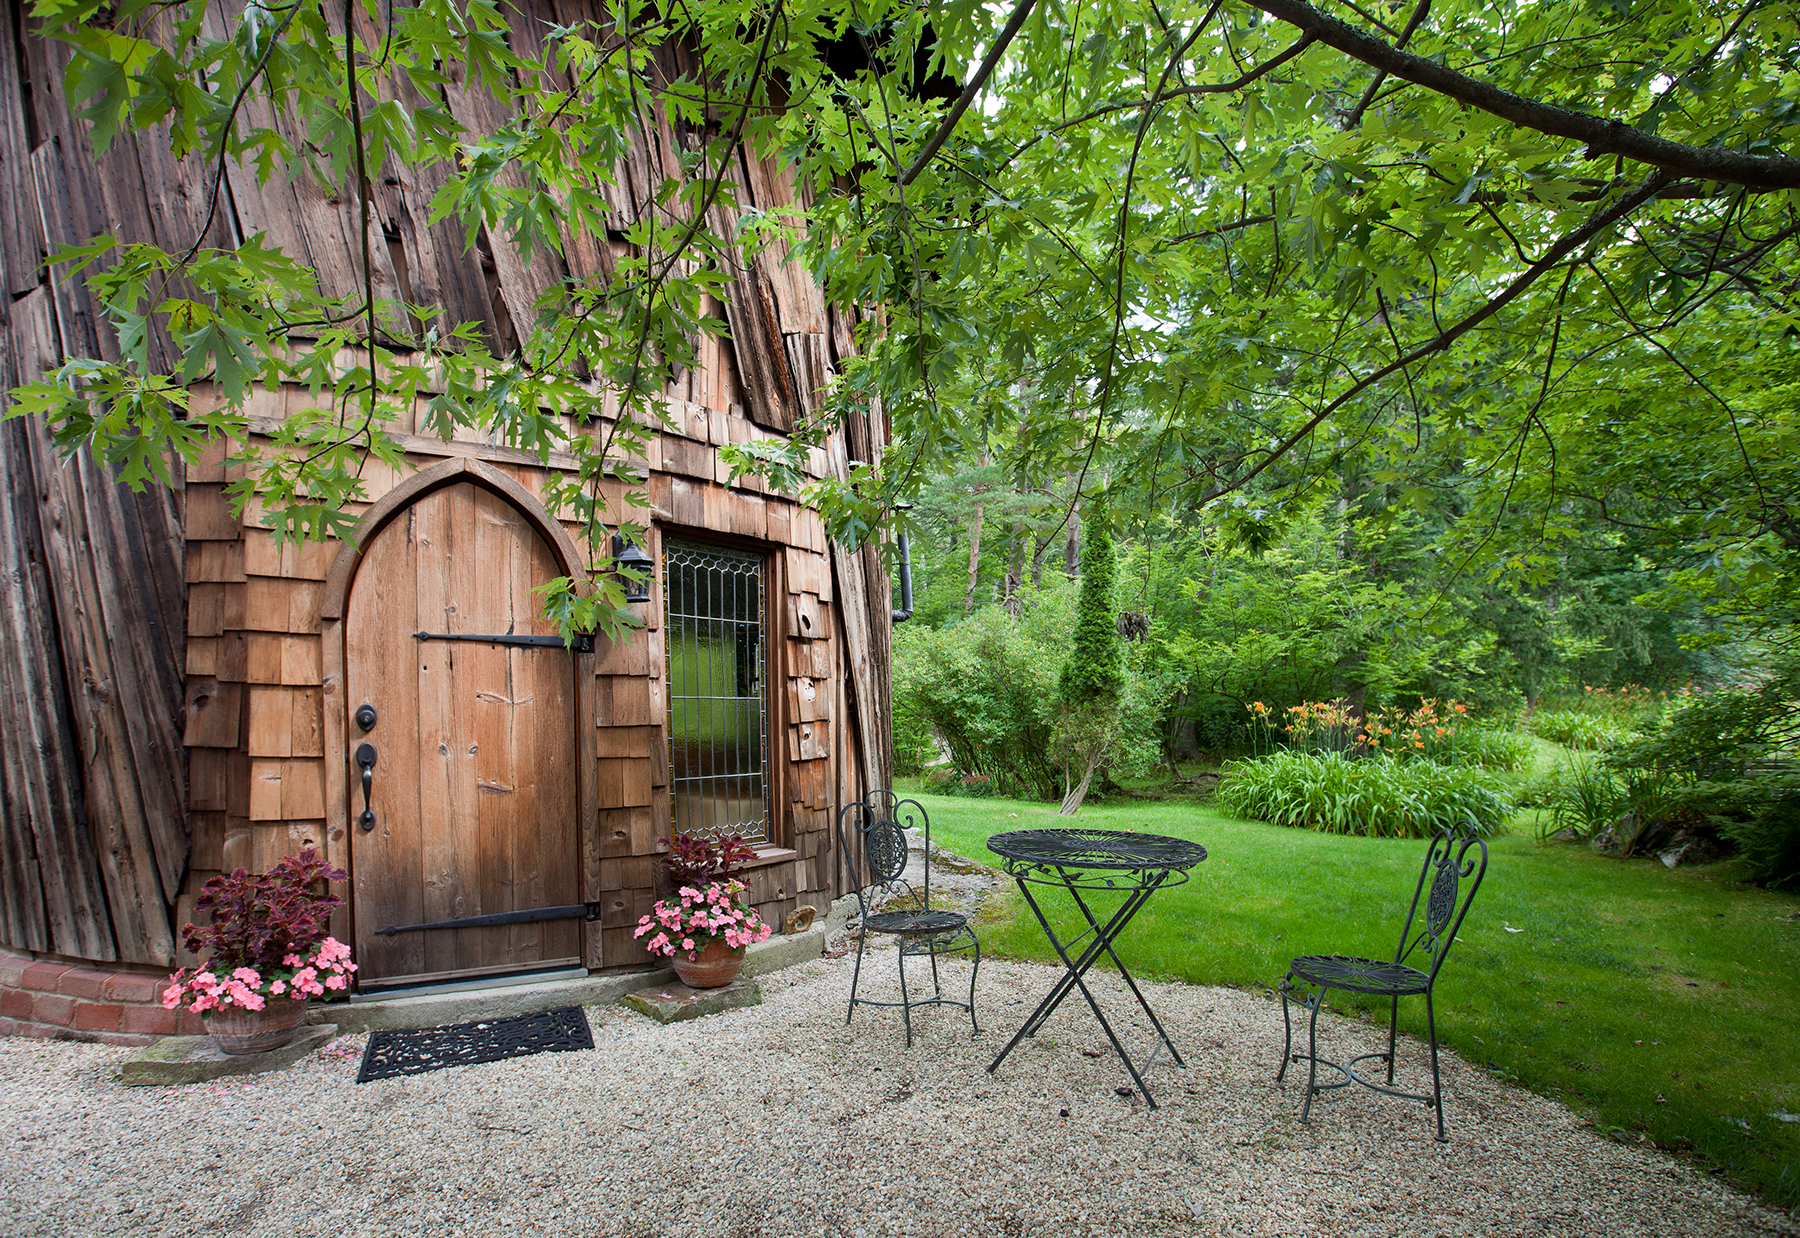 Best Website For Rental Homes: The Most Wished-for Airbnb In Every State